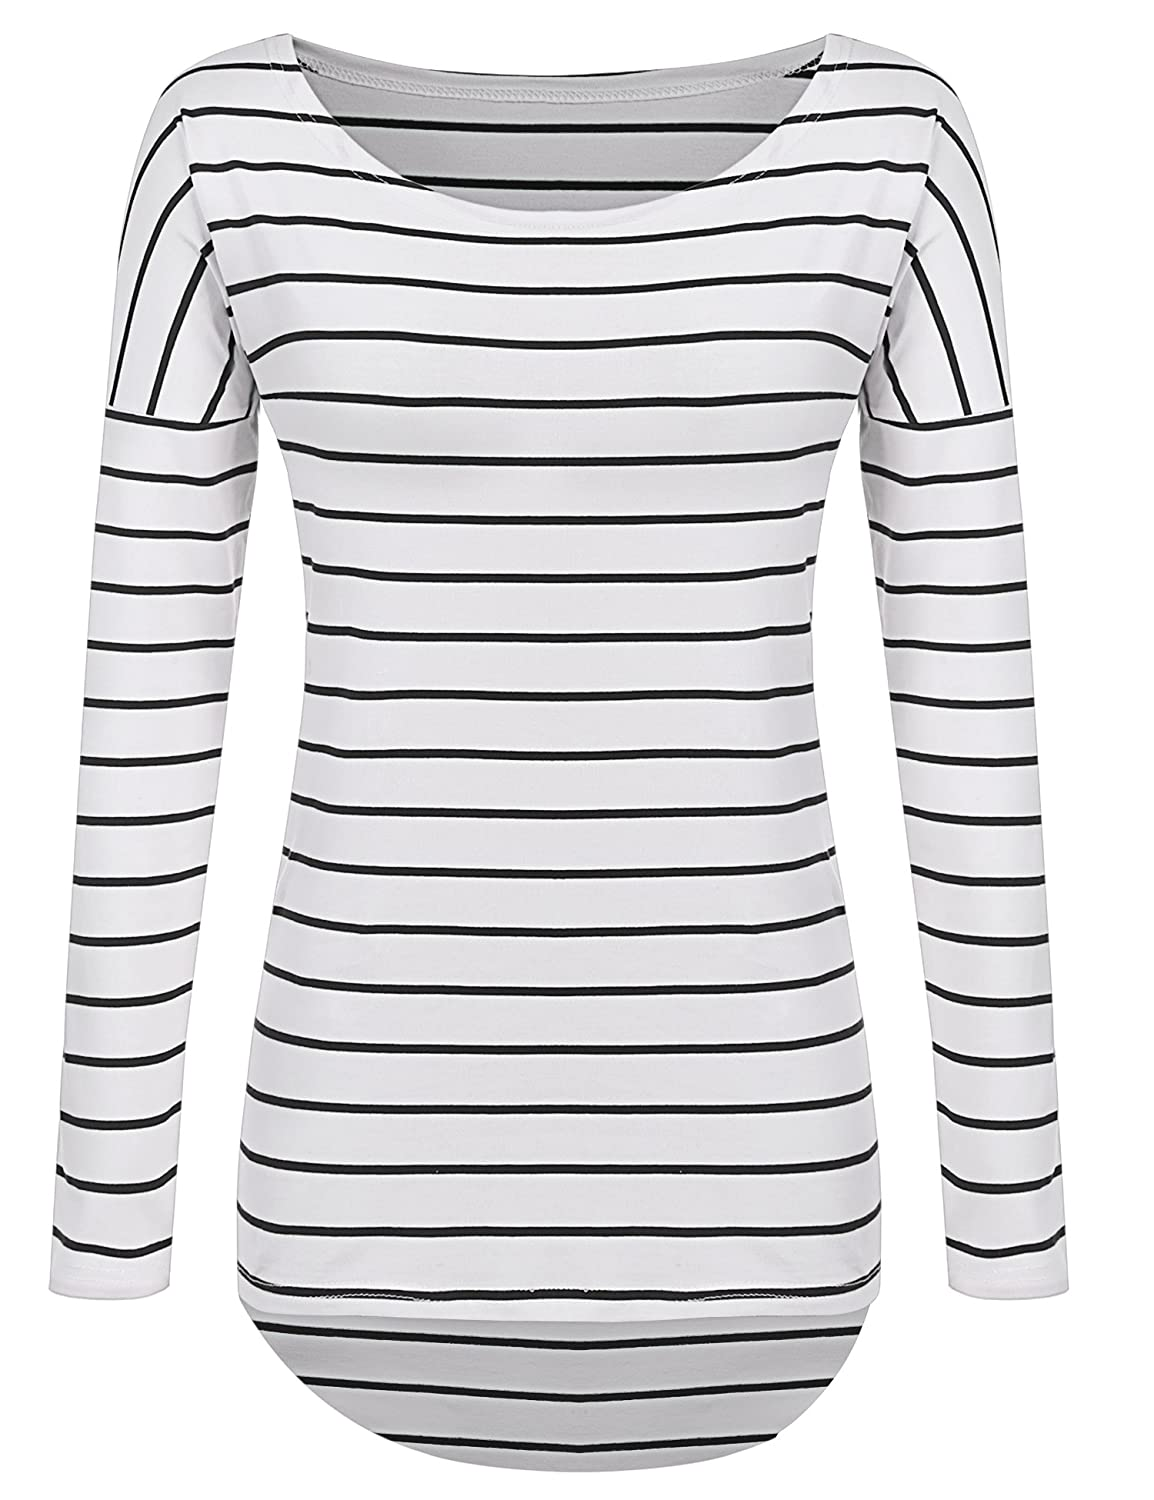 6bc7dcc0efccdd Long Sleeve Striped Blouse t